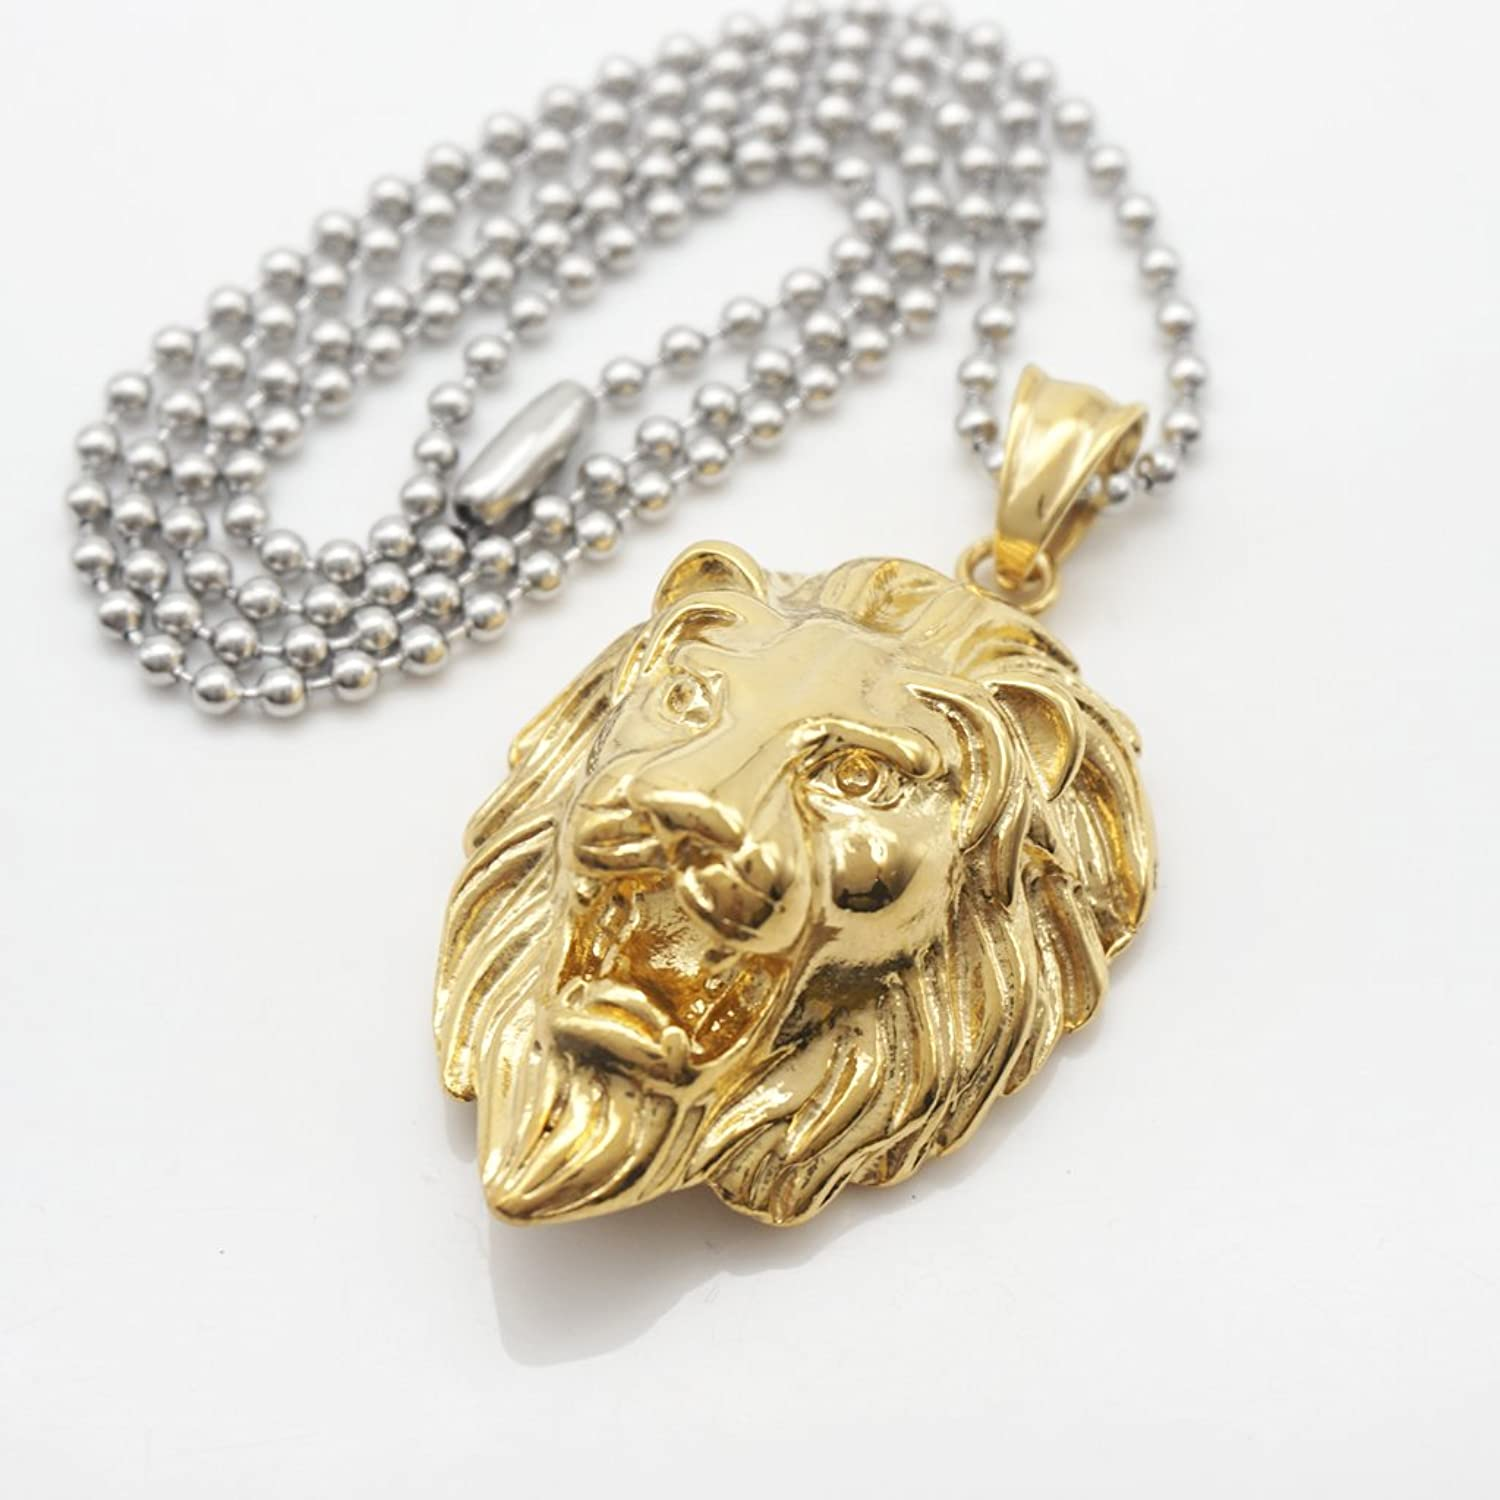 pendant head in product sterling jewellery studio img design leo silver frame lion goldfish vintage